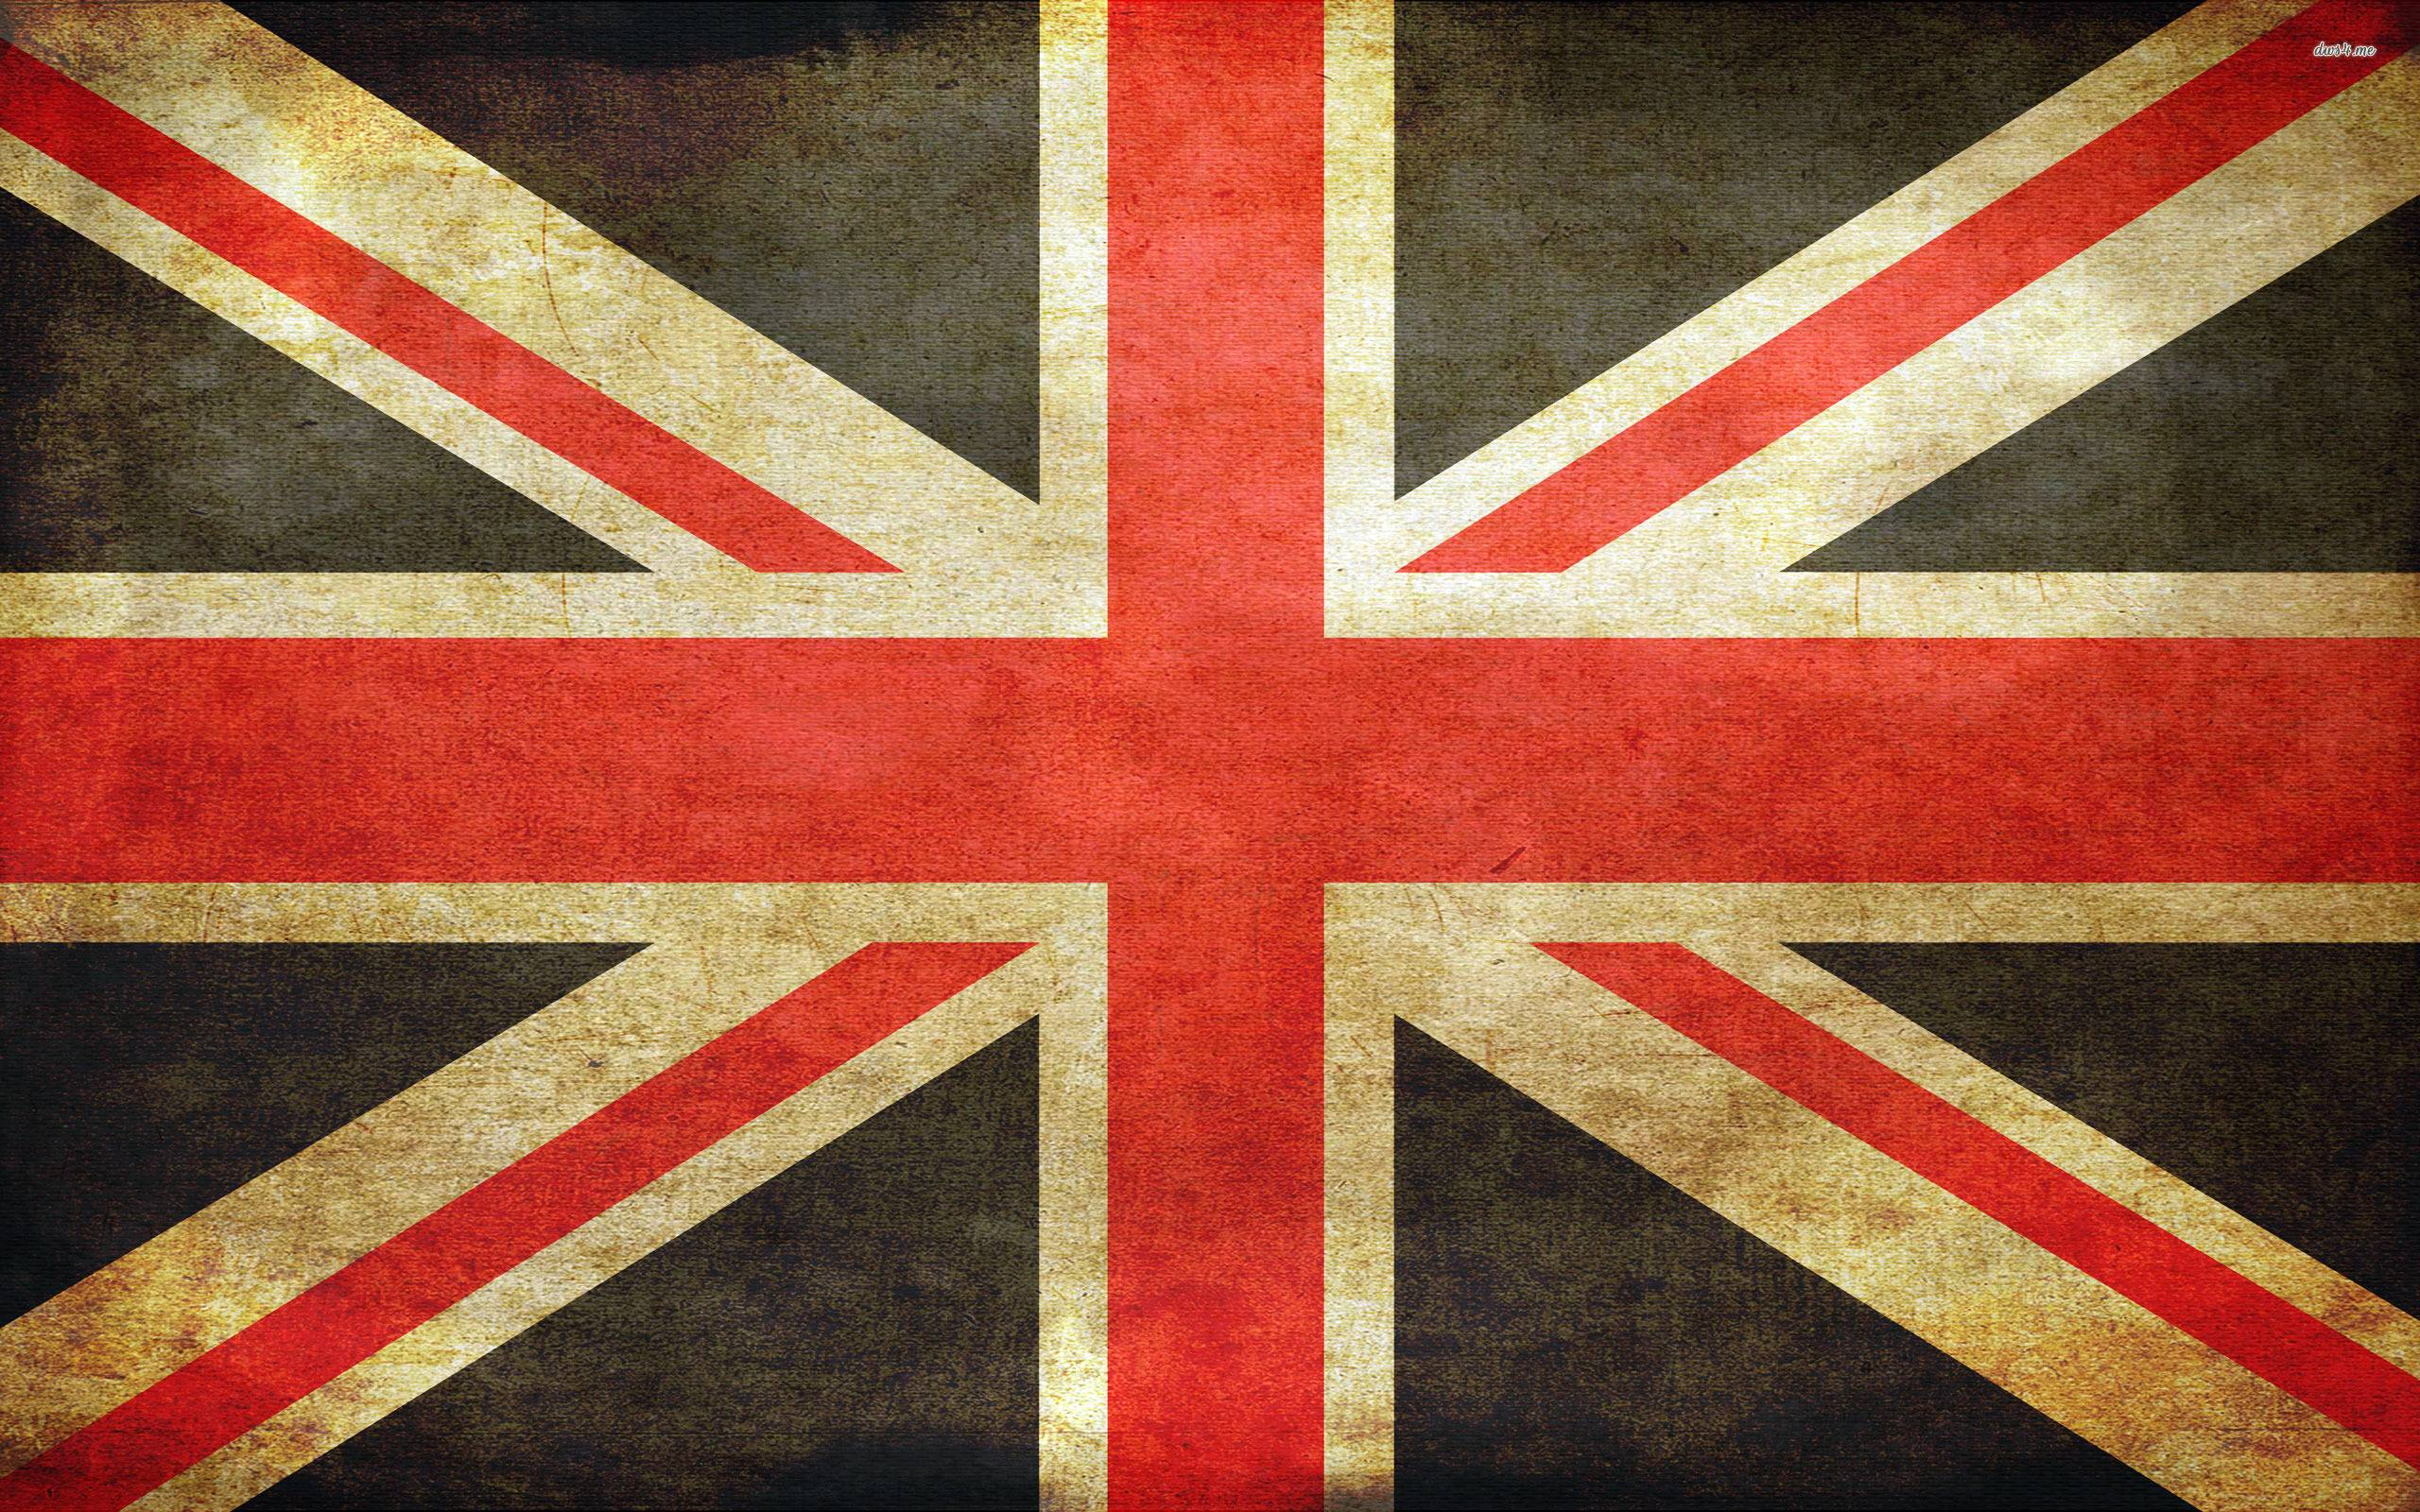 wallpapers backgrounds british - photo #22